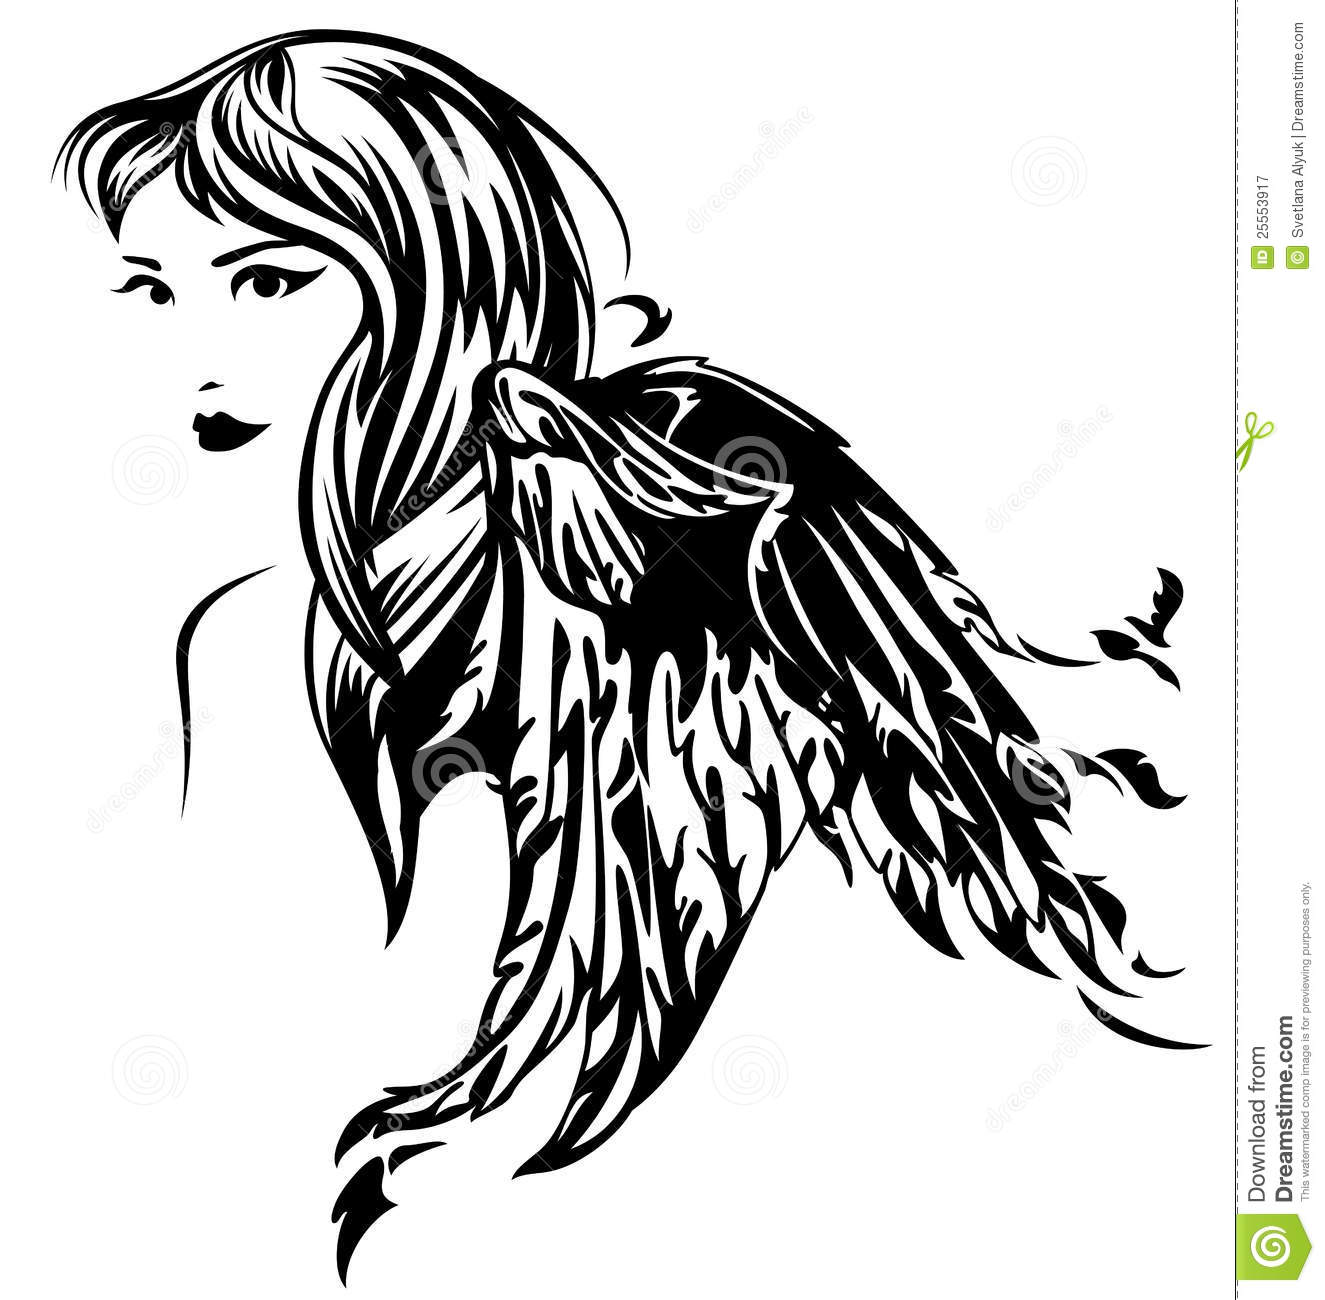 Beautiful angel girl illustration - black and white profile portrait.